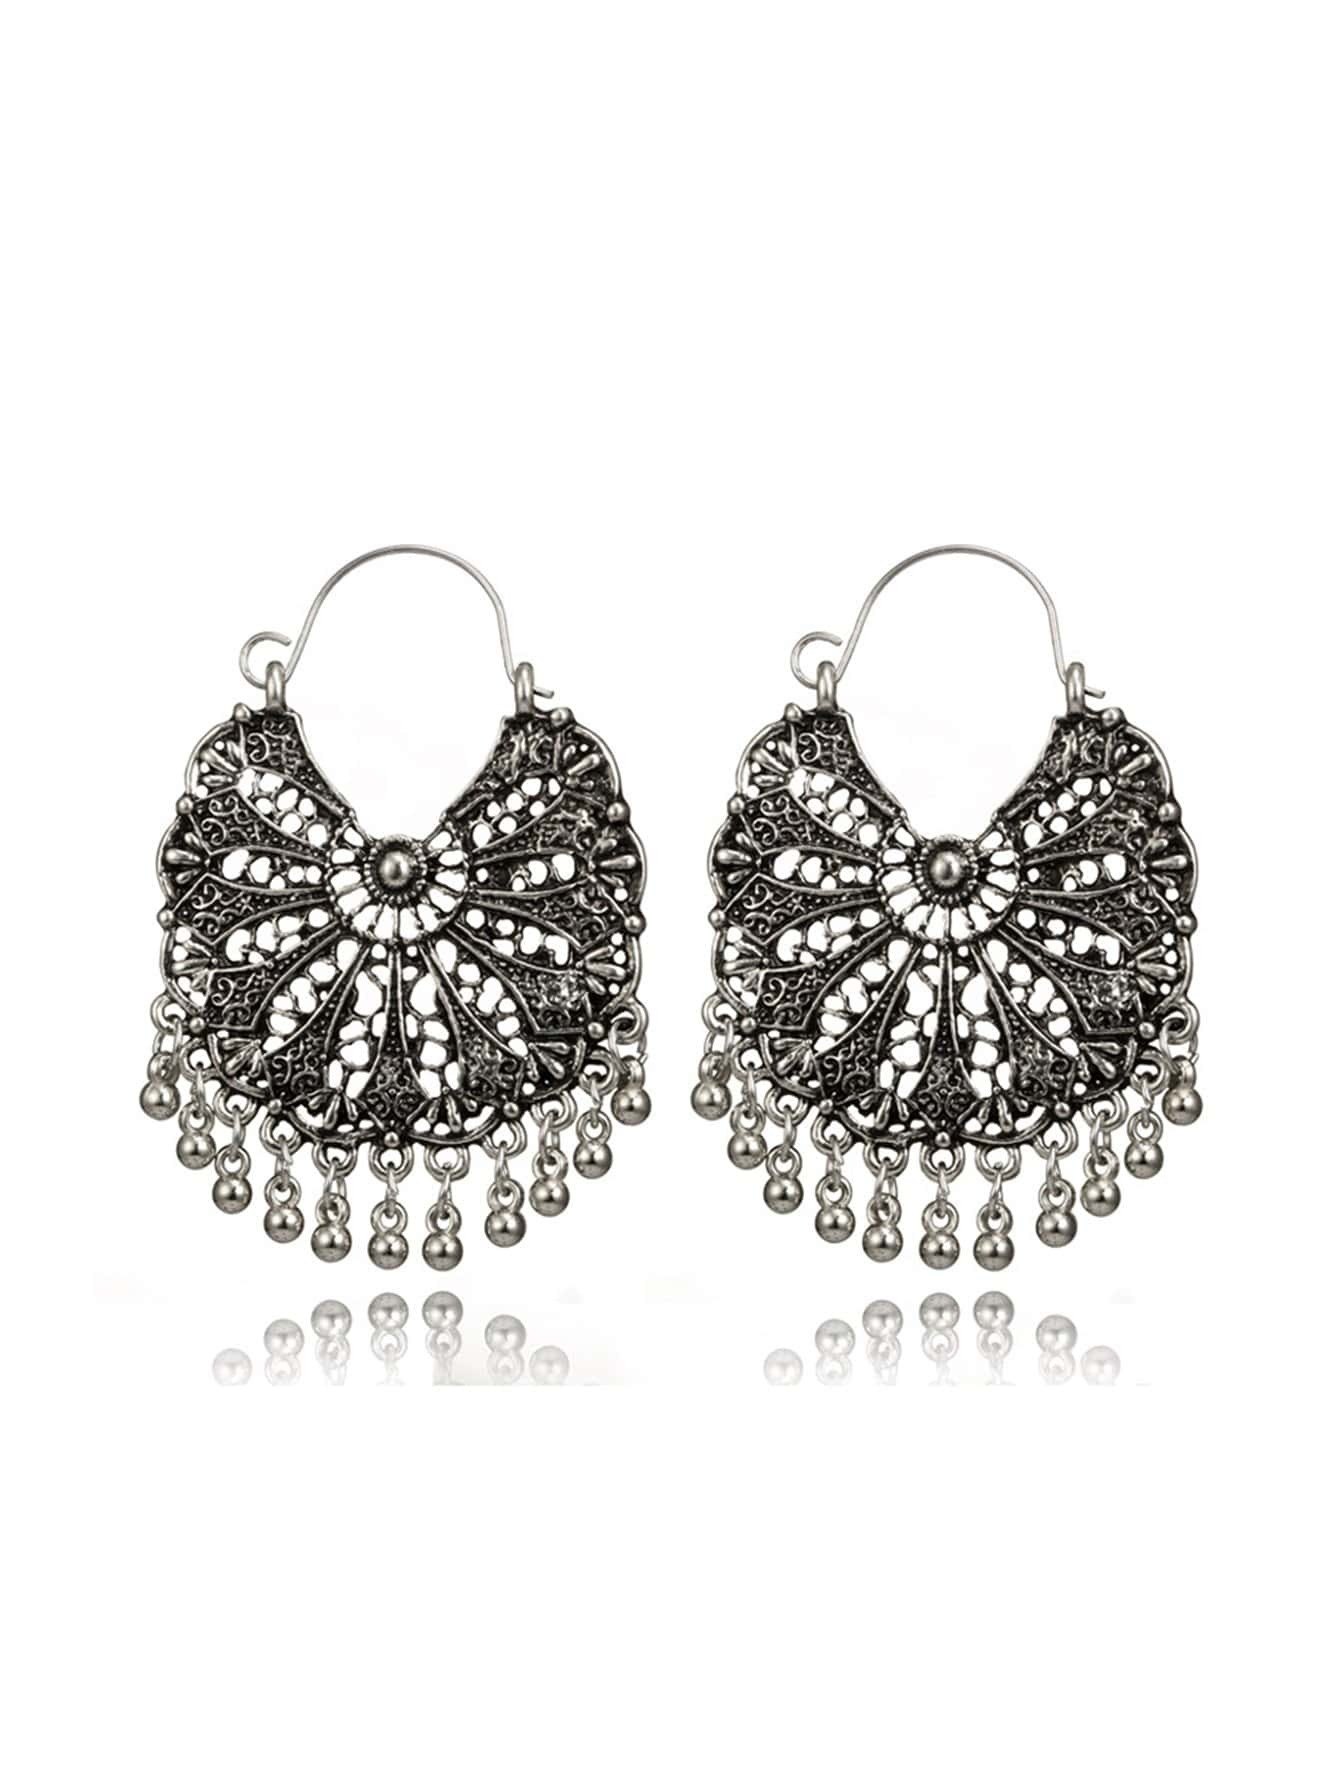 Ball Tassel Hollow Detail Drop Earrings hollow water drop shaped drop earrings